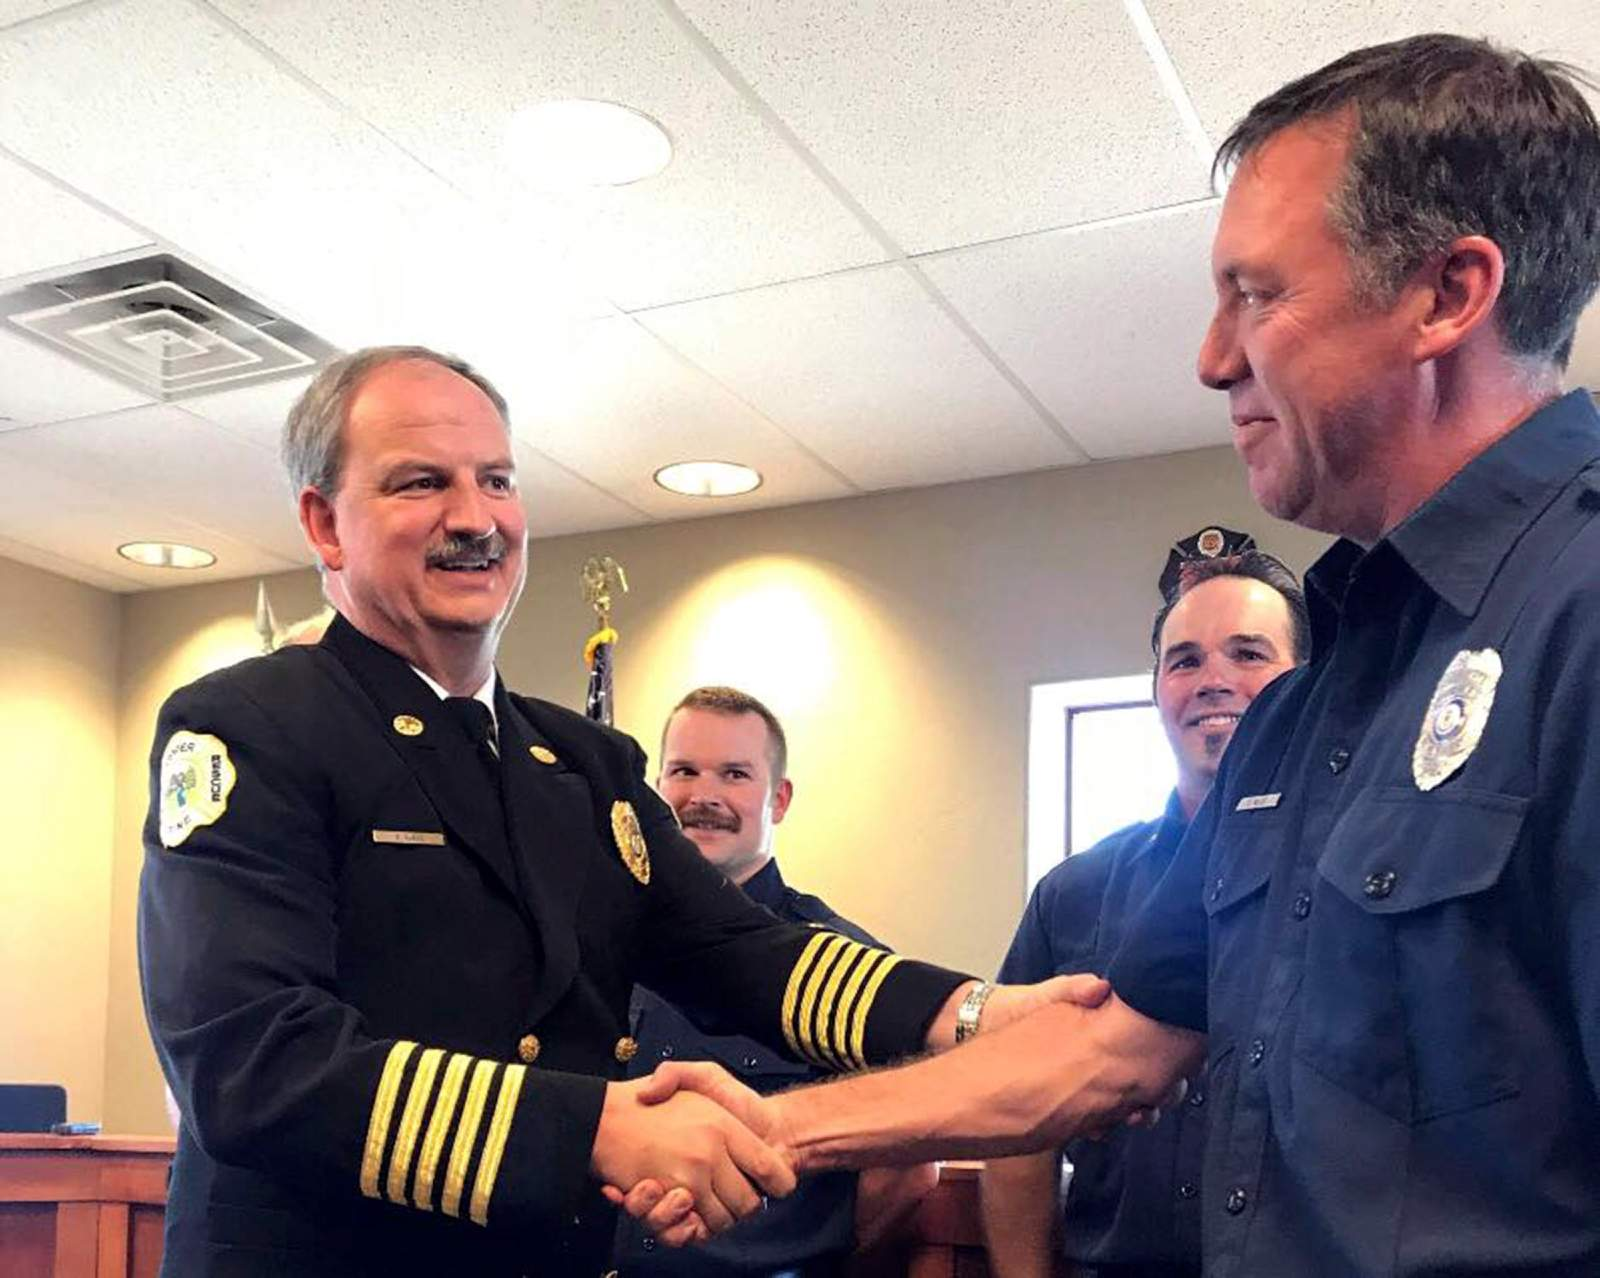 Dealing with painful loss, Bayfield EMT finds his calling